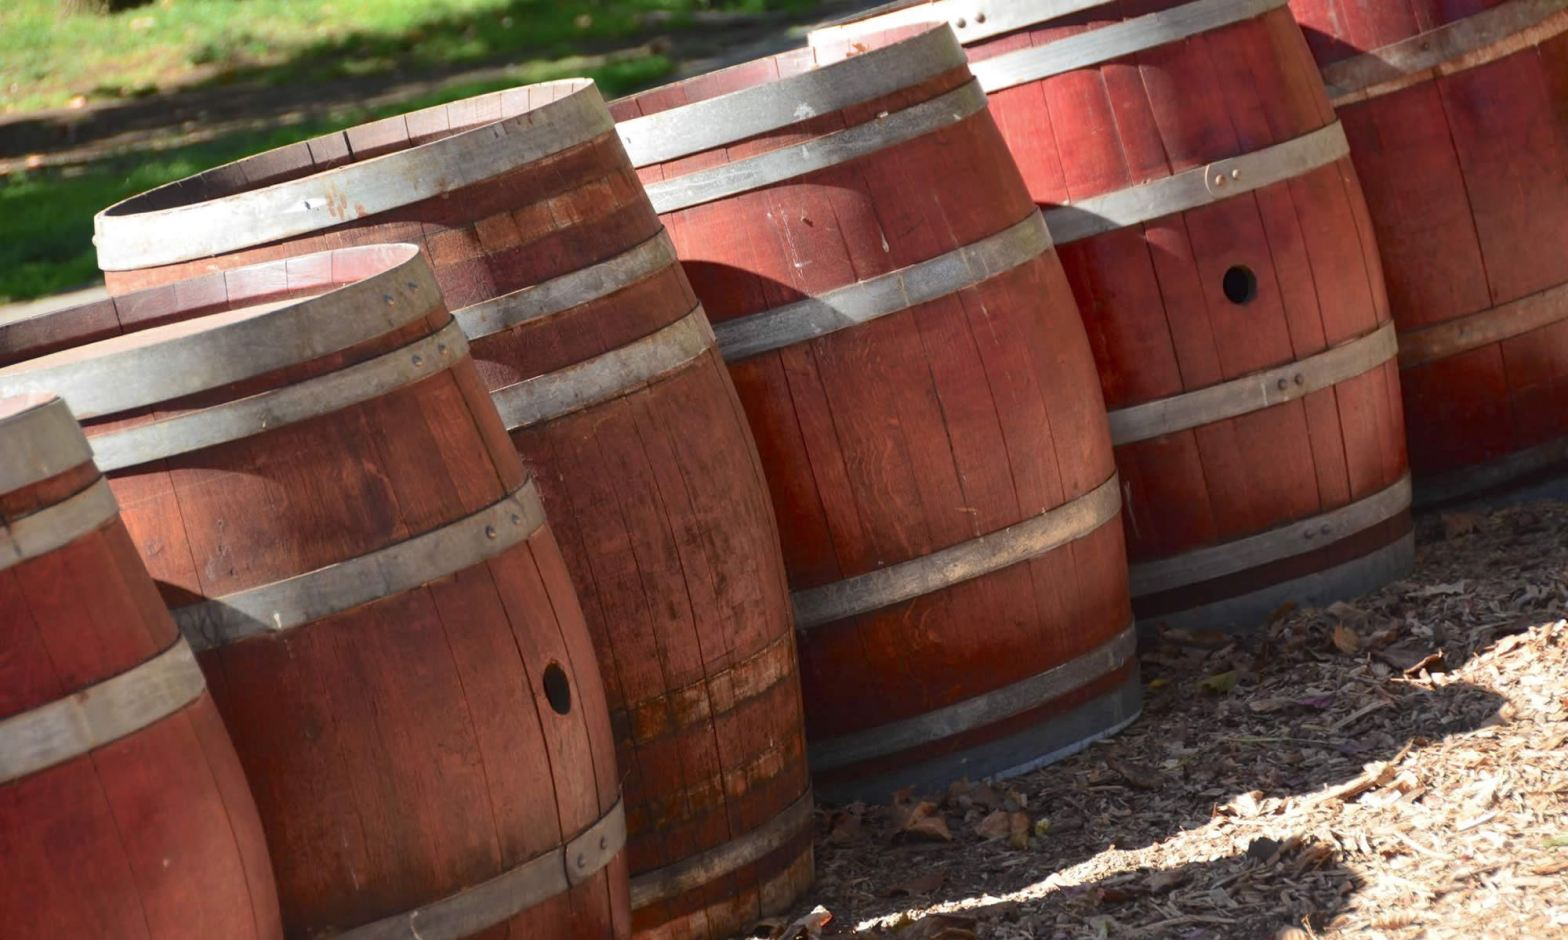 Red-toned wine barrels sit outdoors at a Napa Valley winery.